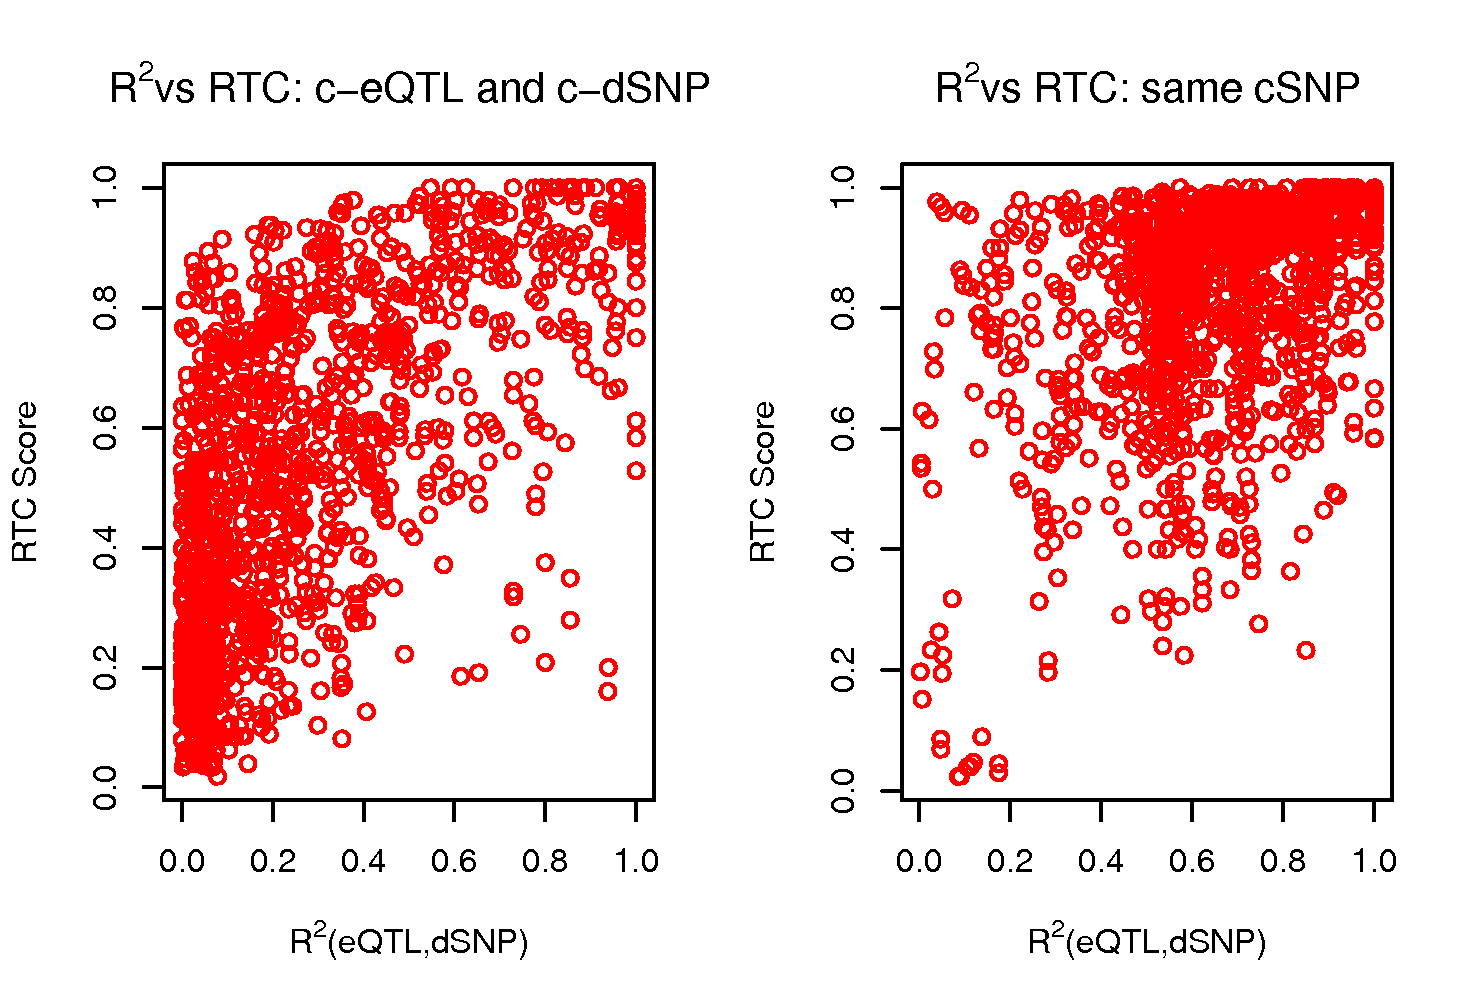 Properties of the RTC score when varying r<sup>2</sup>.